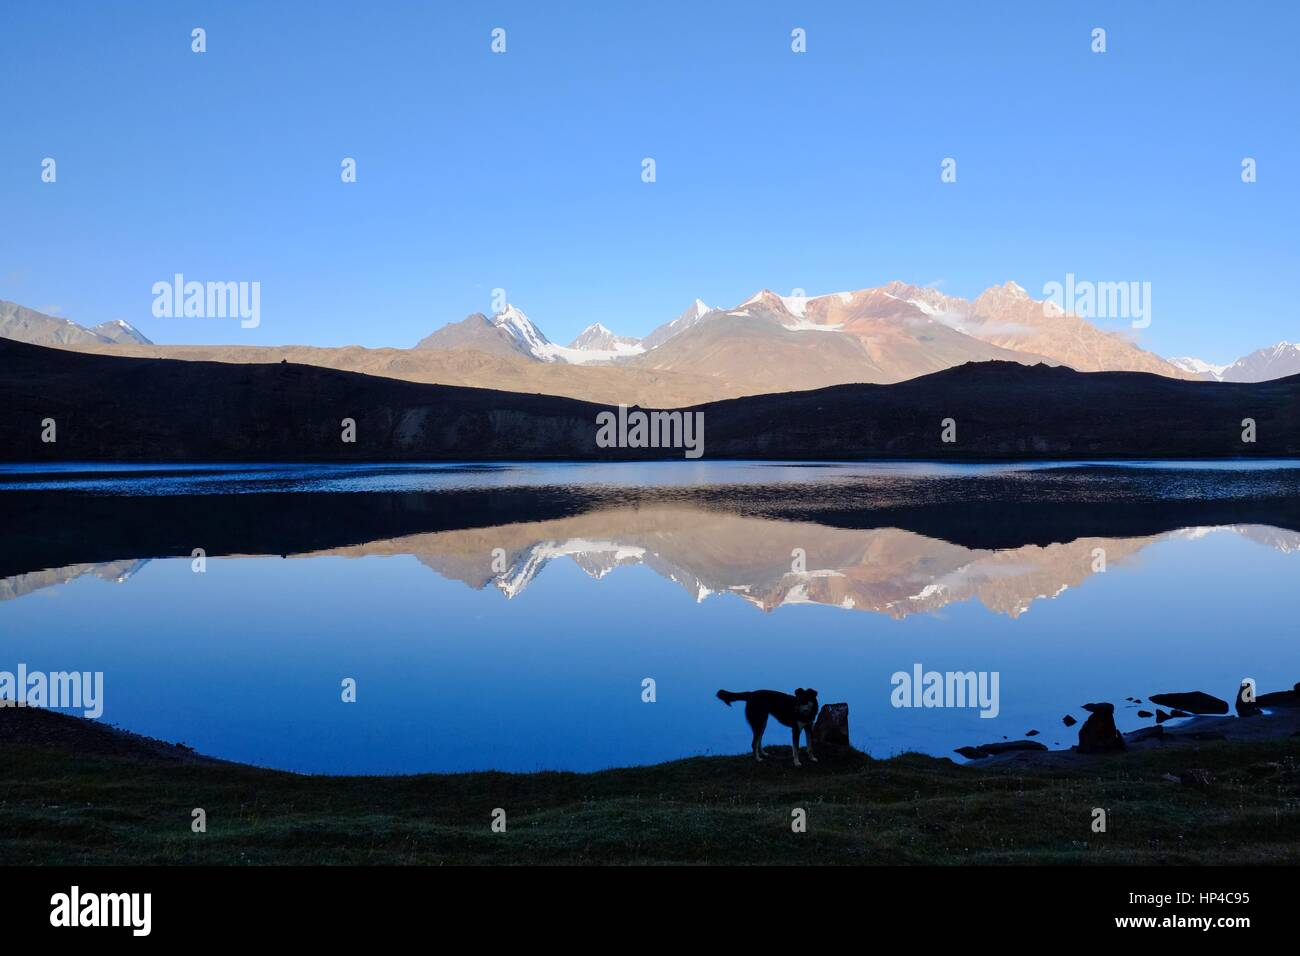 Chandra Taal (Moon Lake) in Indian state Himachalč Pradesh at 4300 m altitude. Dog living there in the wilderness - Stock Image